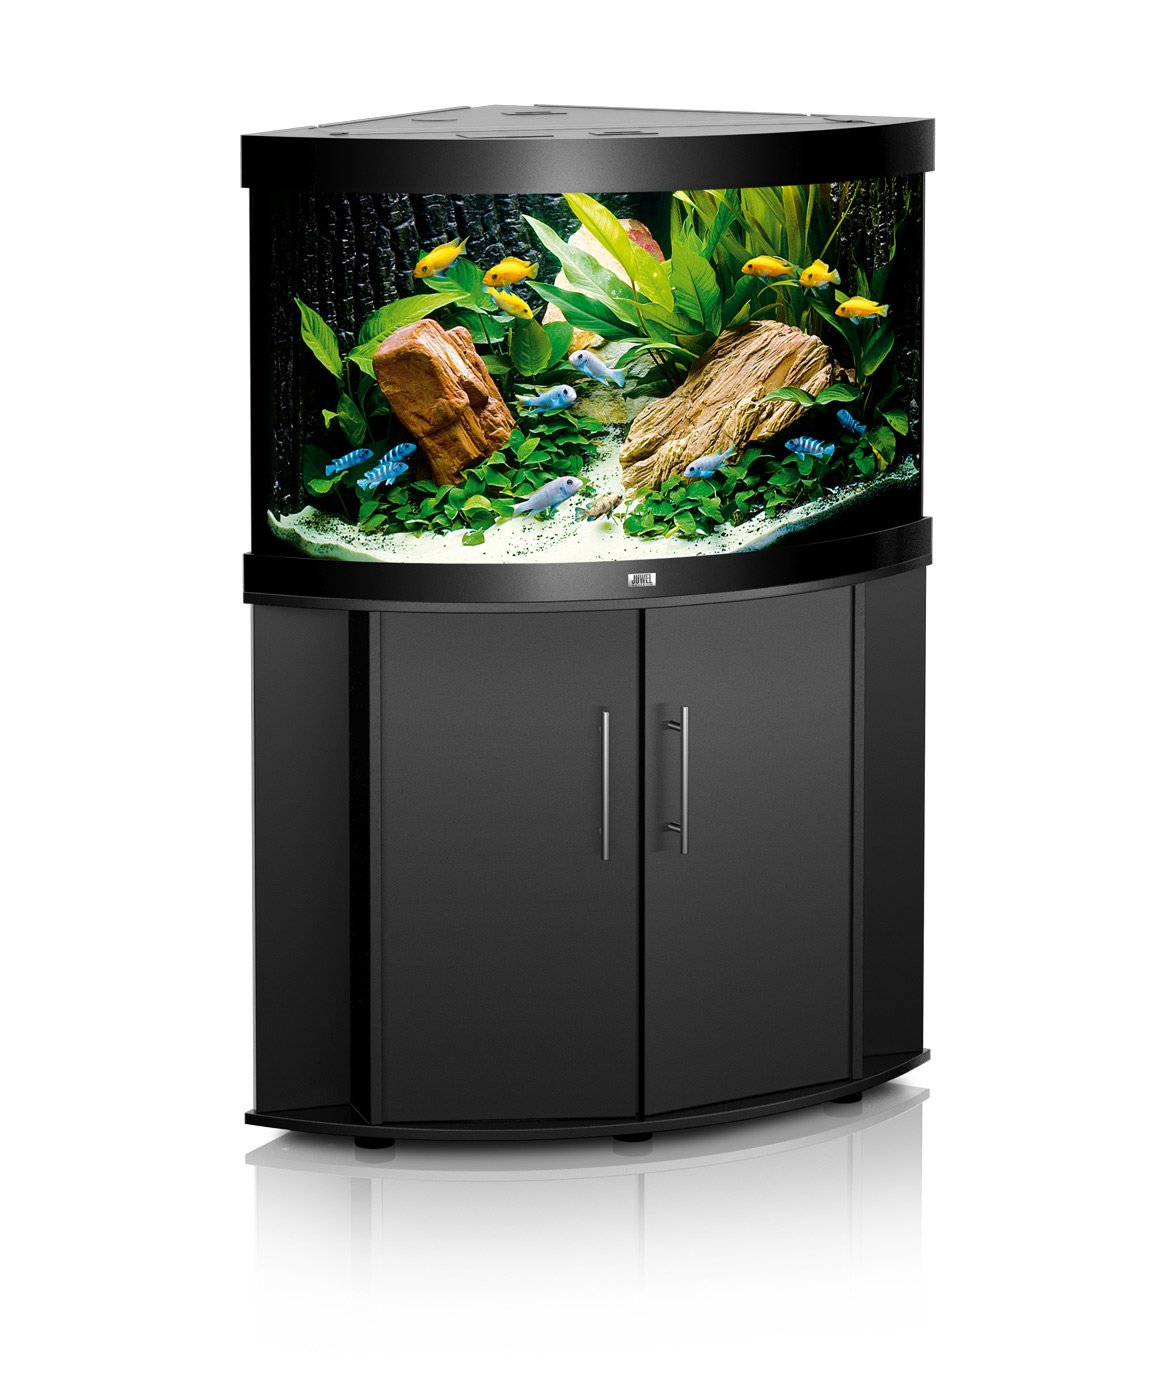 aquarium juwel trigon 190 dim 99 x 70 x 60 cm 190 litres. Black Bedroom Furniture Sets. Home Design Ideas